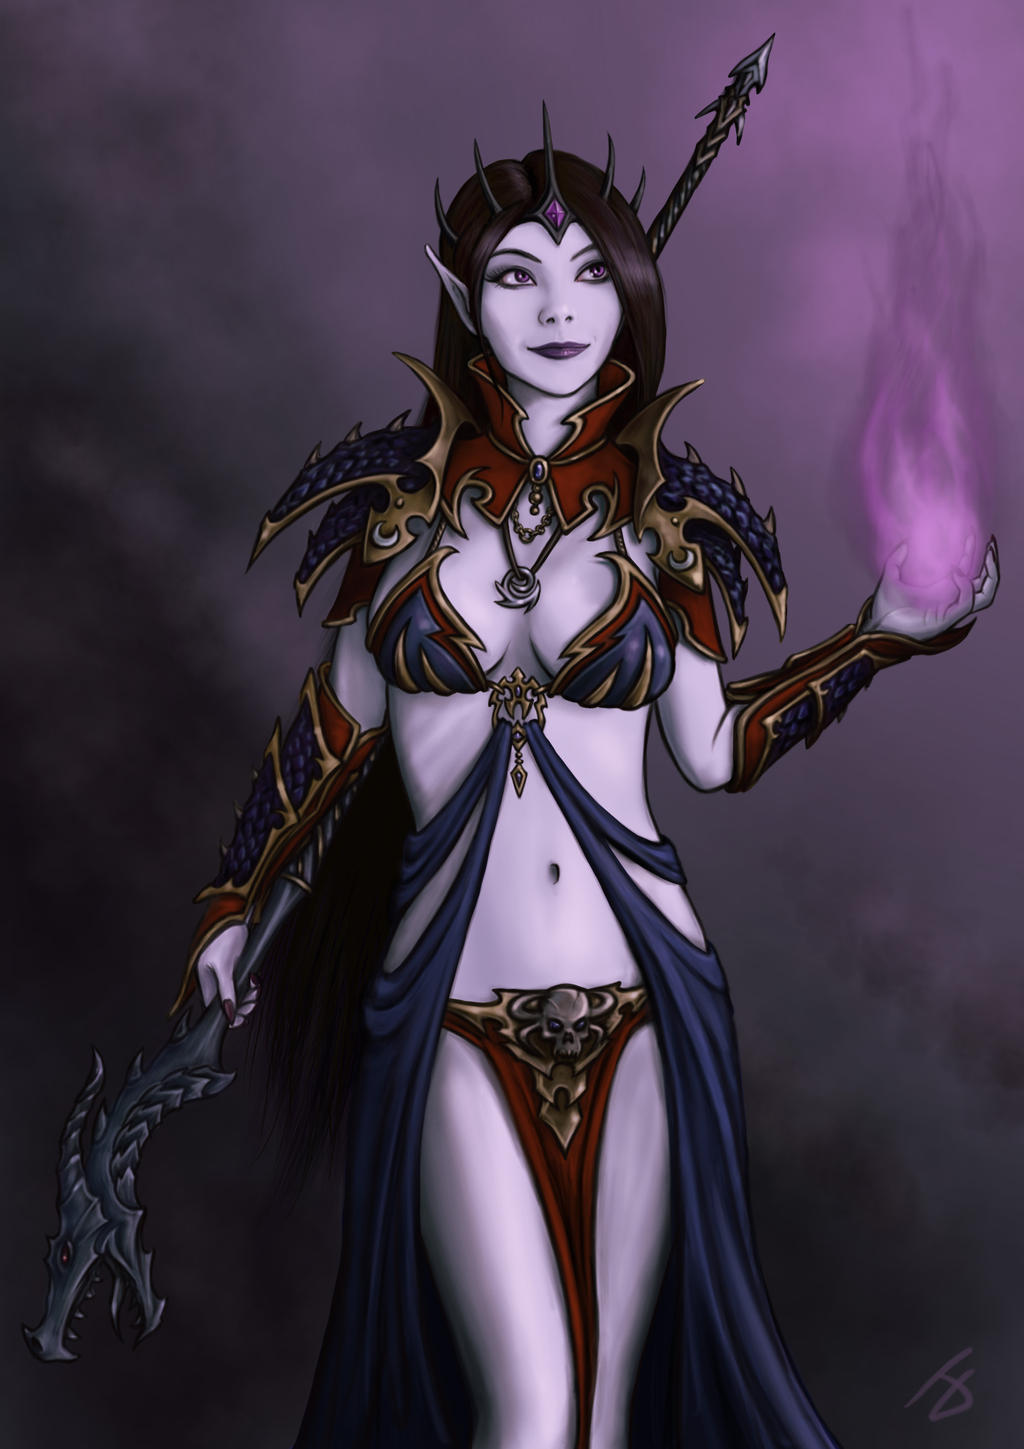 [Warhammer Fantasy Battle] Images diverses - Page 2 Amarasha___dark_elf_sorceress_by_i_m_m_o-d6ptqm2